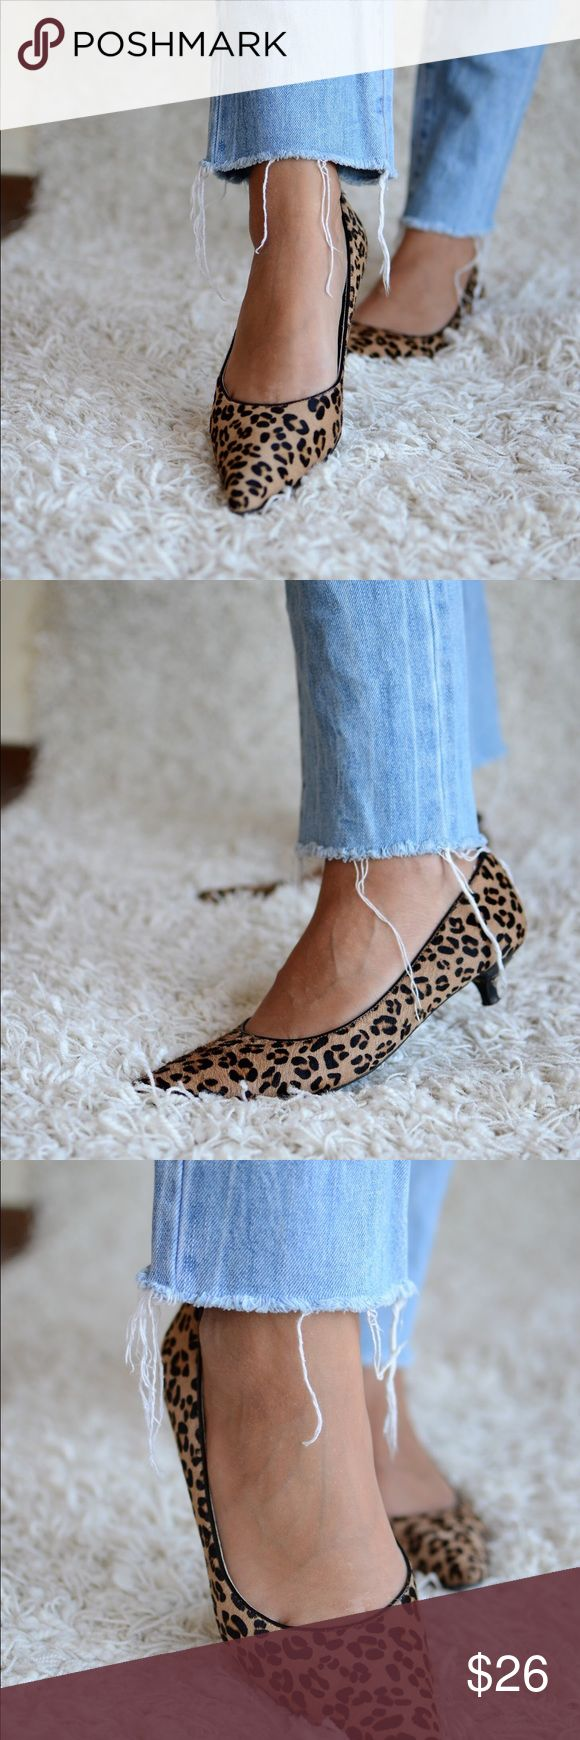 Ellen Tracy Animal Print pointed toe kitten heels I am fostering the cutest (but most pooping) kittens on earth. I didn't know I would change their 3 litter boxes like 4 times a day. They are become a full time job, that's why you don't see me here much 😂 Ellen Tracy animal Print pointed toe kitten heels Pumps. Basically new. Price still on. Orig $99, sold for $69.99. Size 9. Fit true size. #shoes #pumps Ellen Tracy Shoes